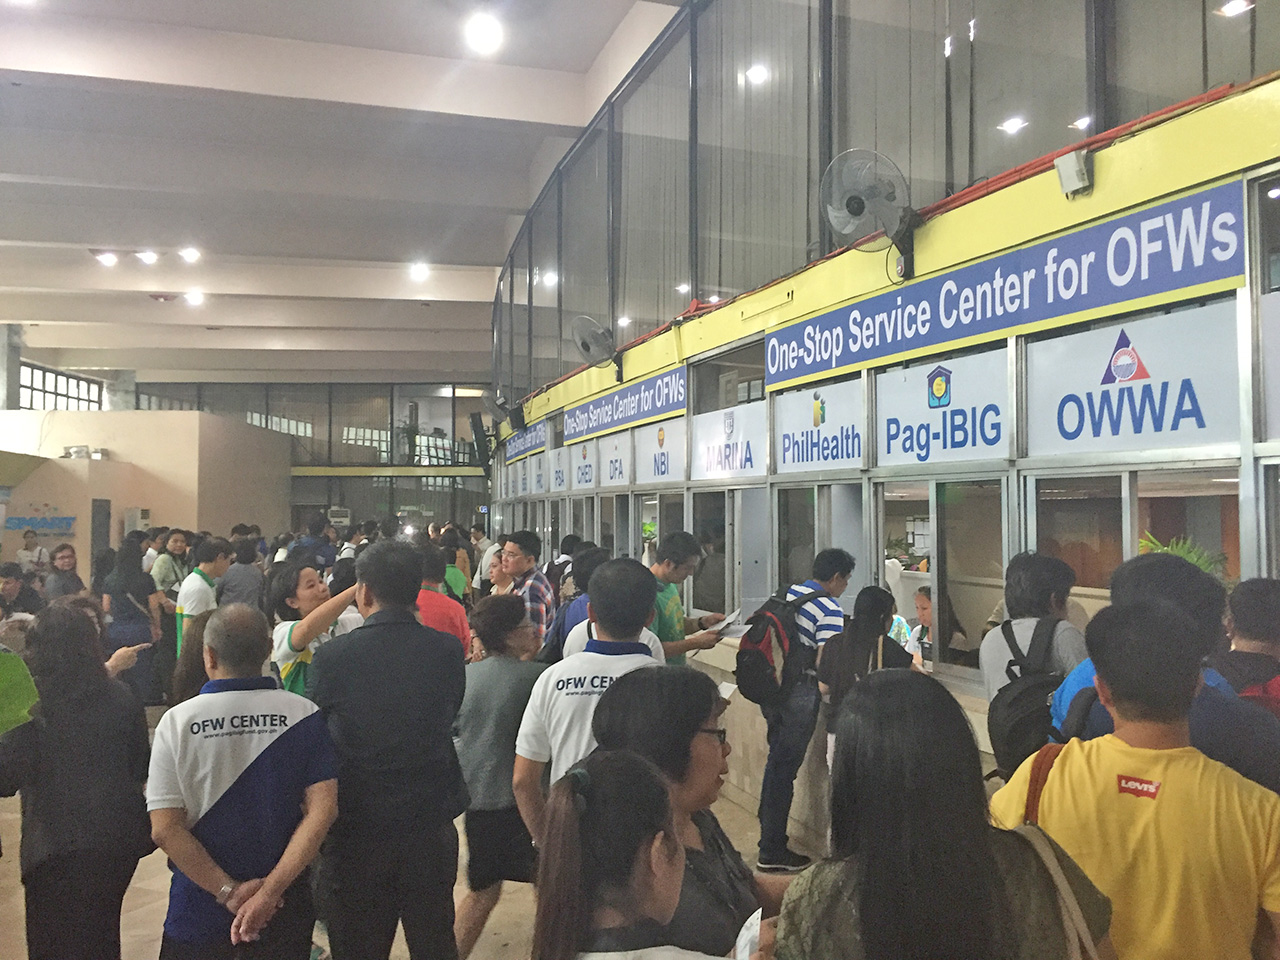 The one stop service center is expected to serve as many as 2000 to 3000 OFWs everyday. Photo by Don Kevin Hapal